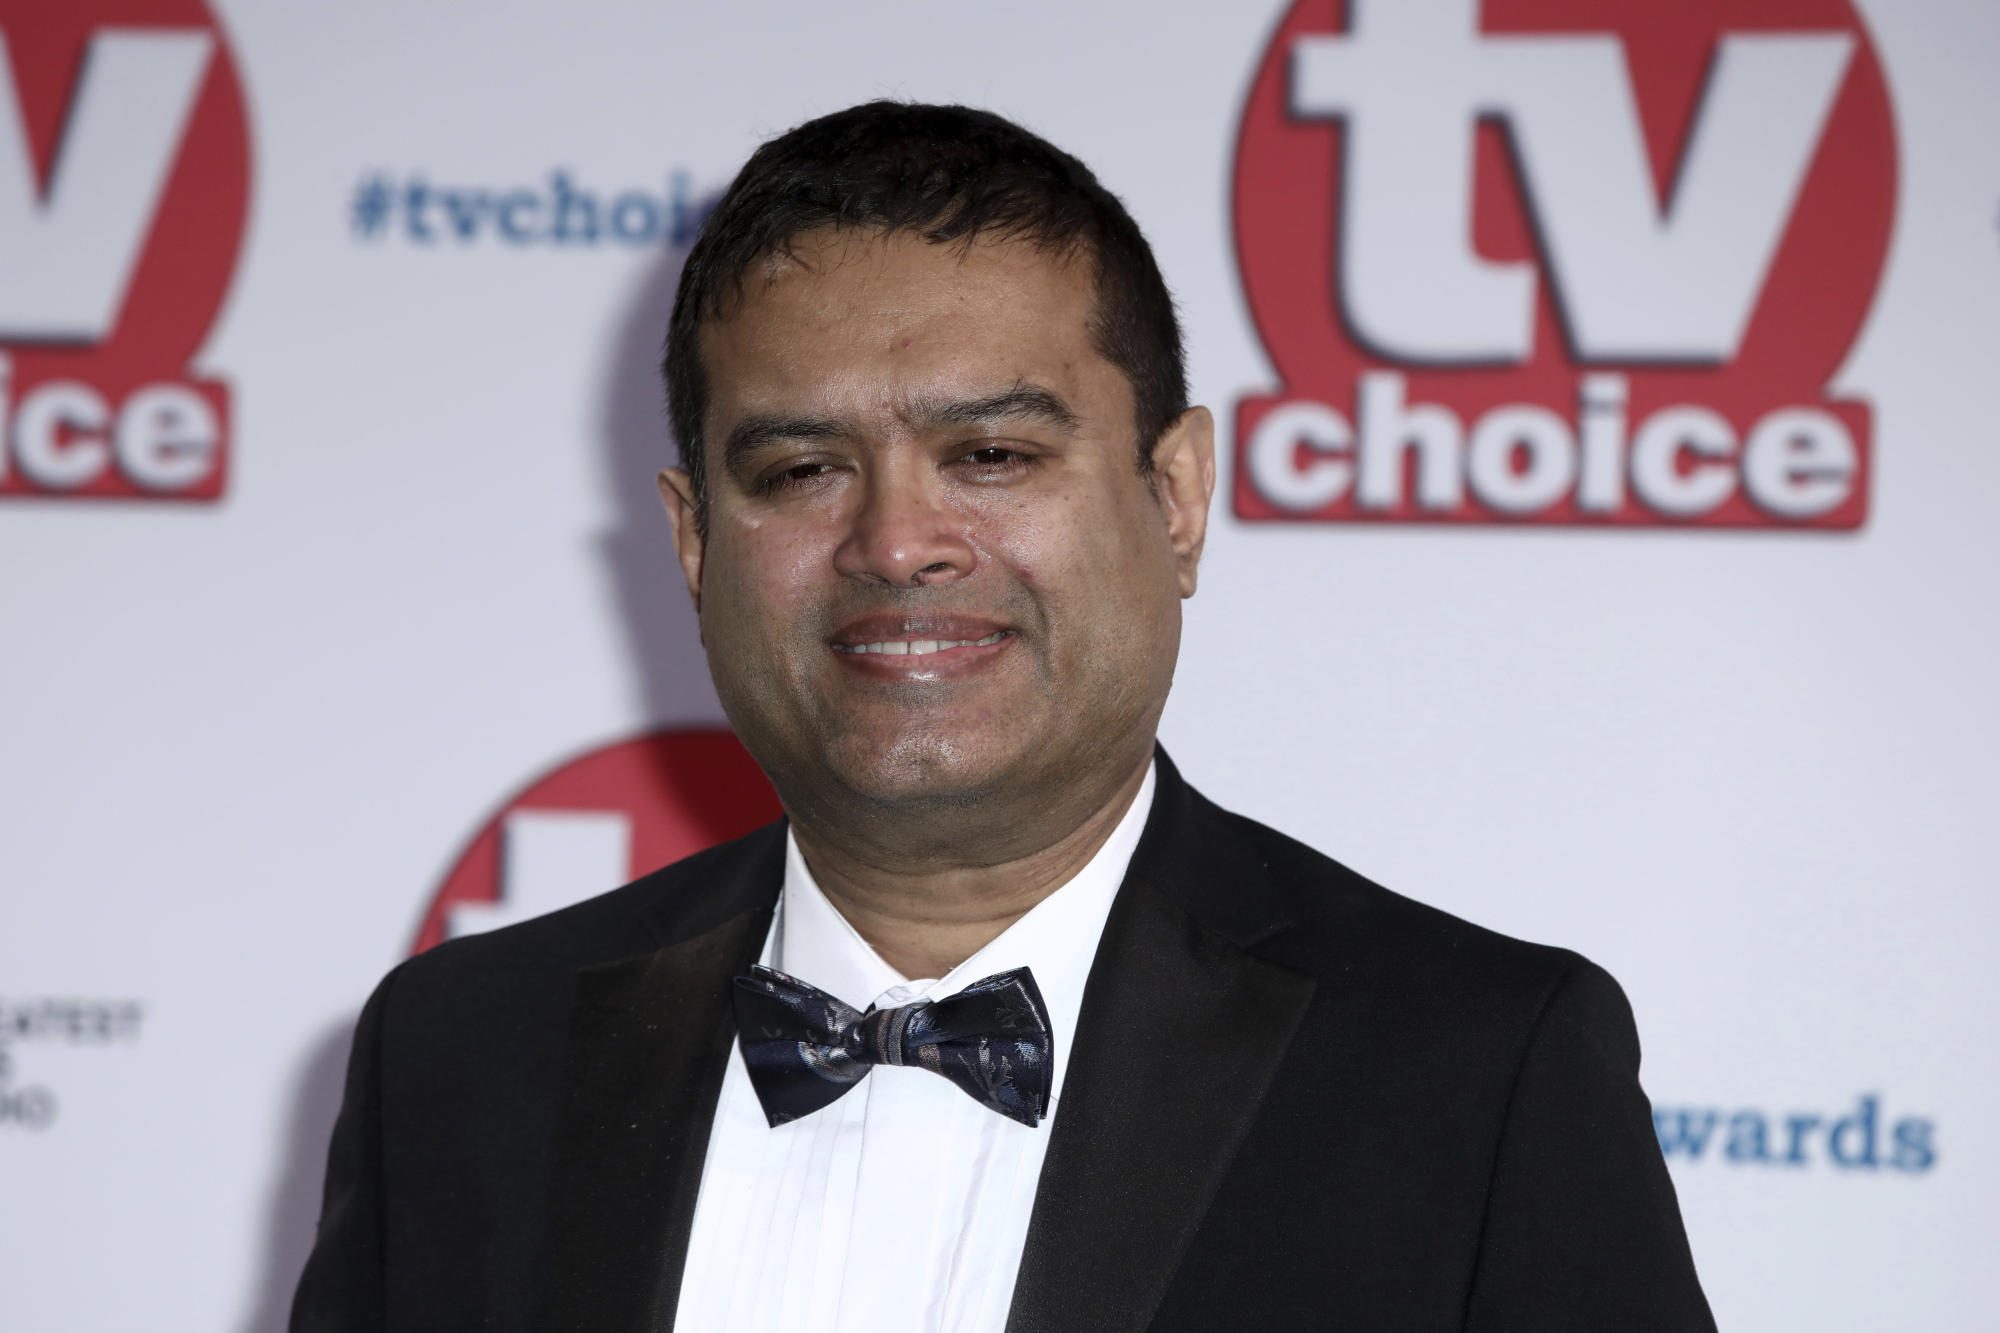 The Chase Star Paul Sinha Marries Long Term Partner Olly